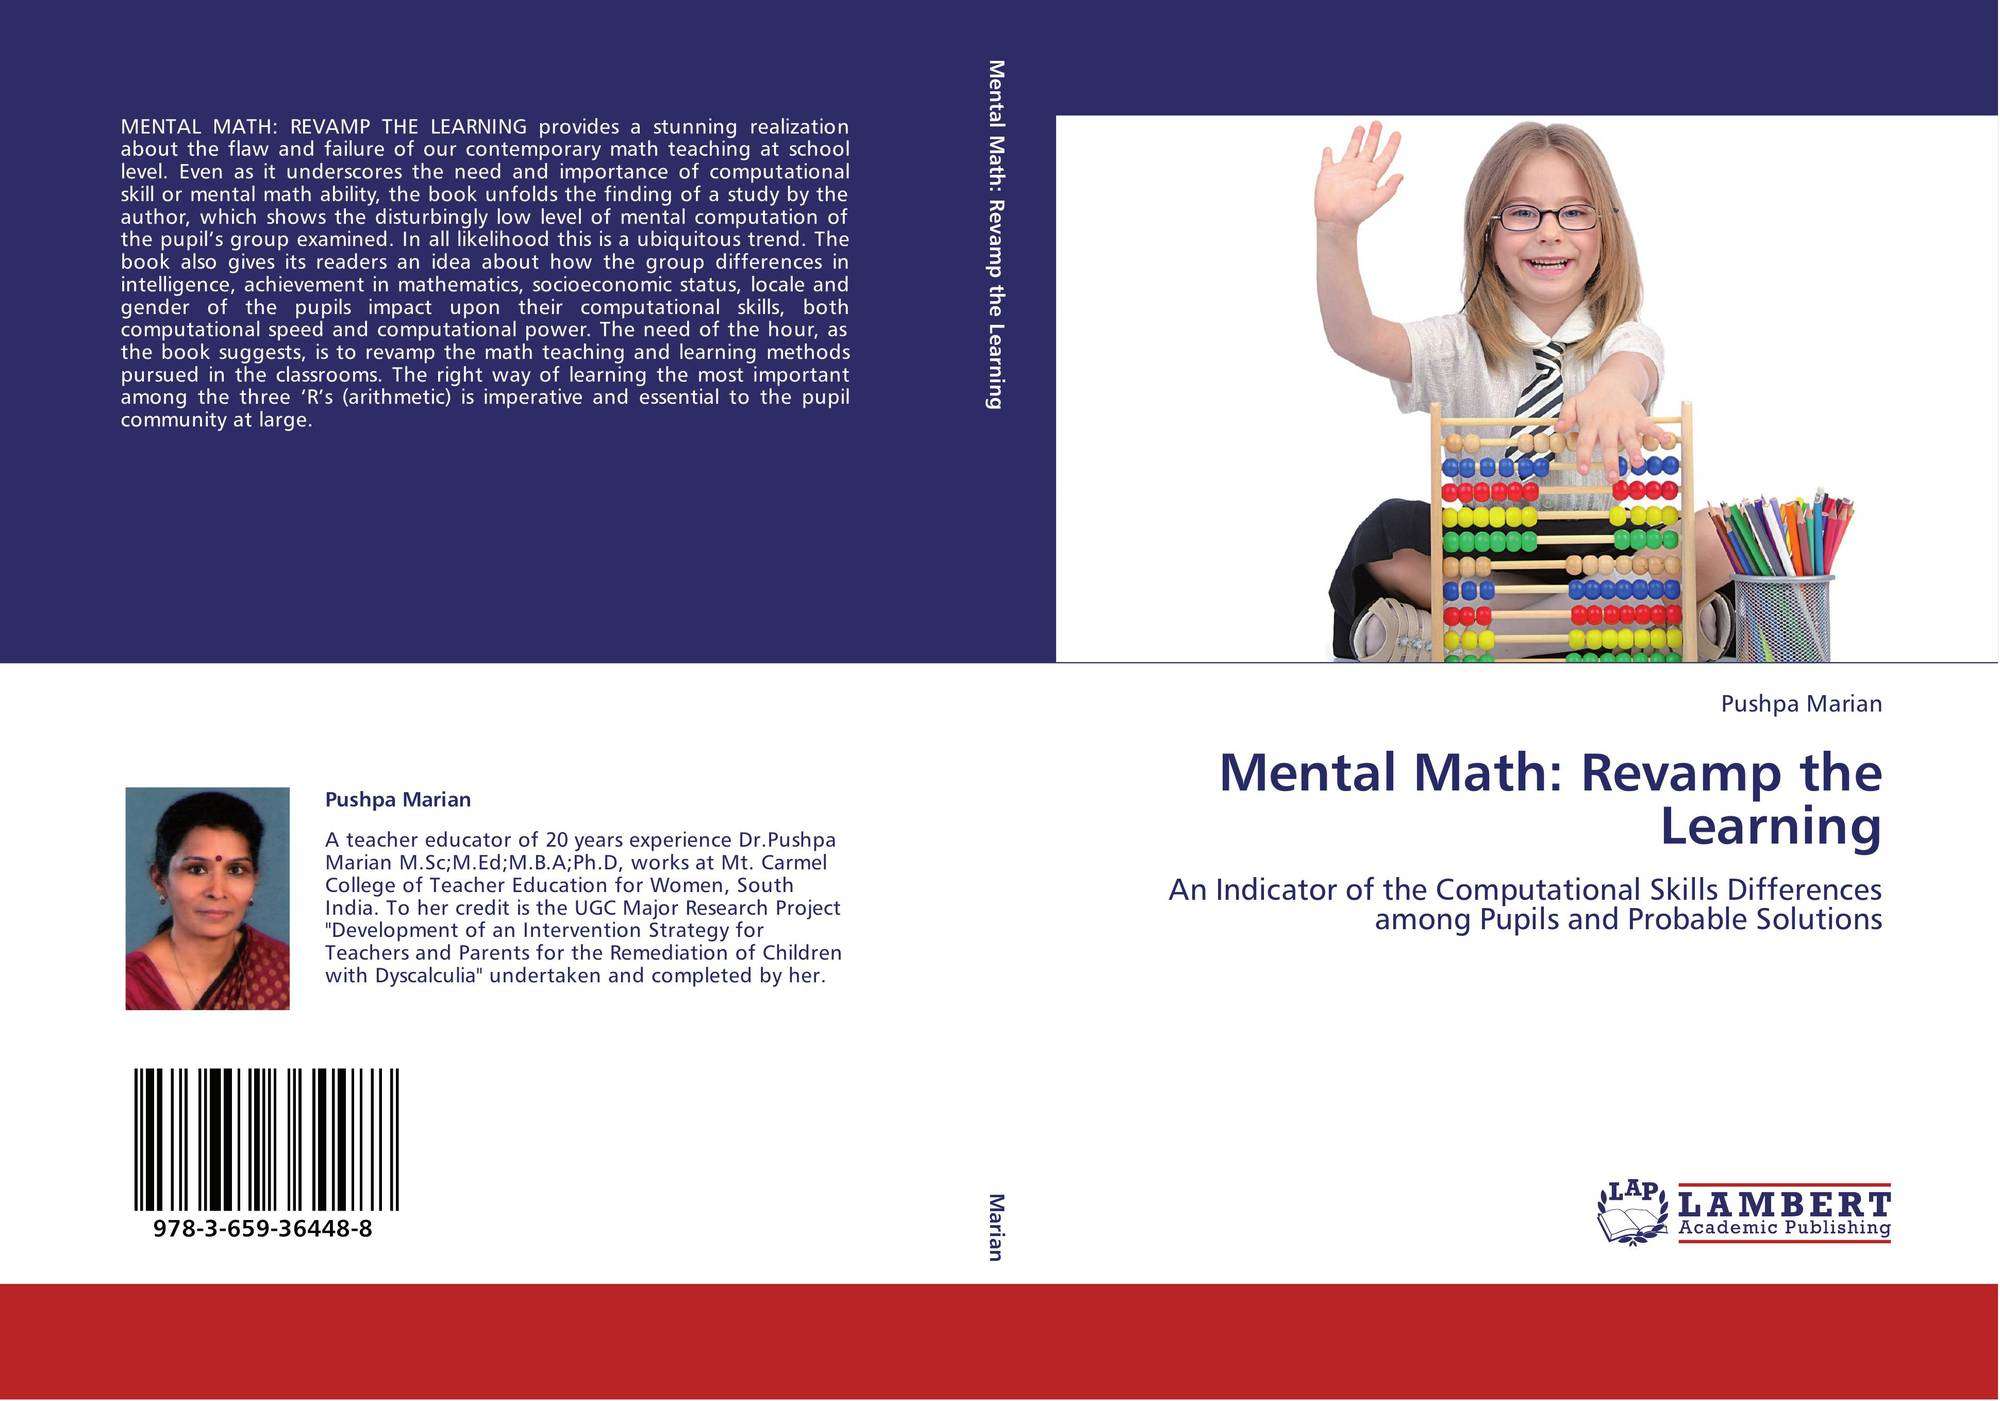 Worksheet Learning Mental Math mental math revamp the learning 978 3 659 36448 8 learning